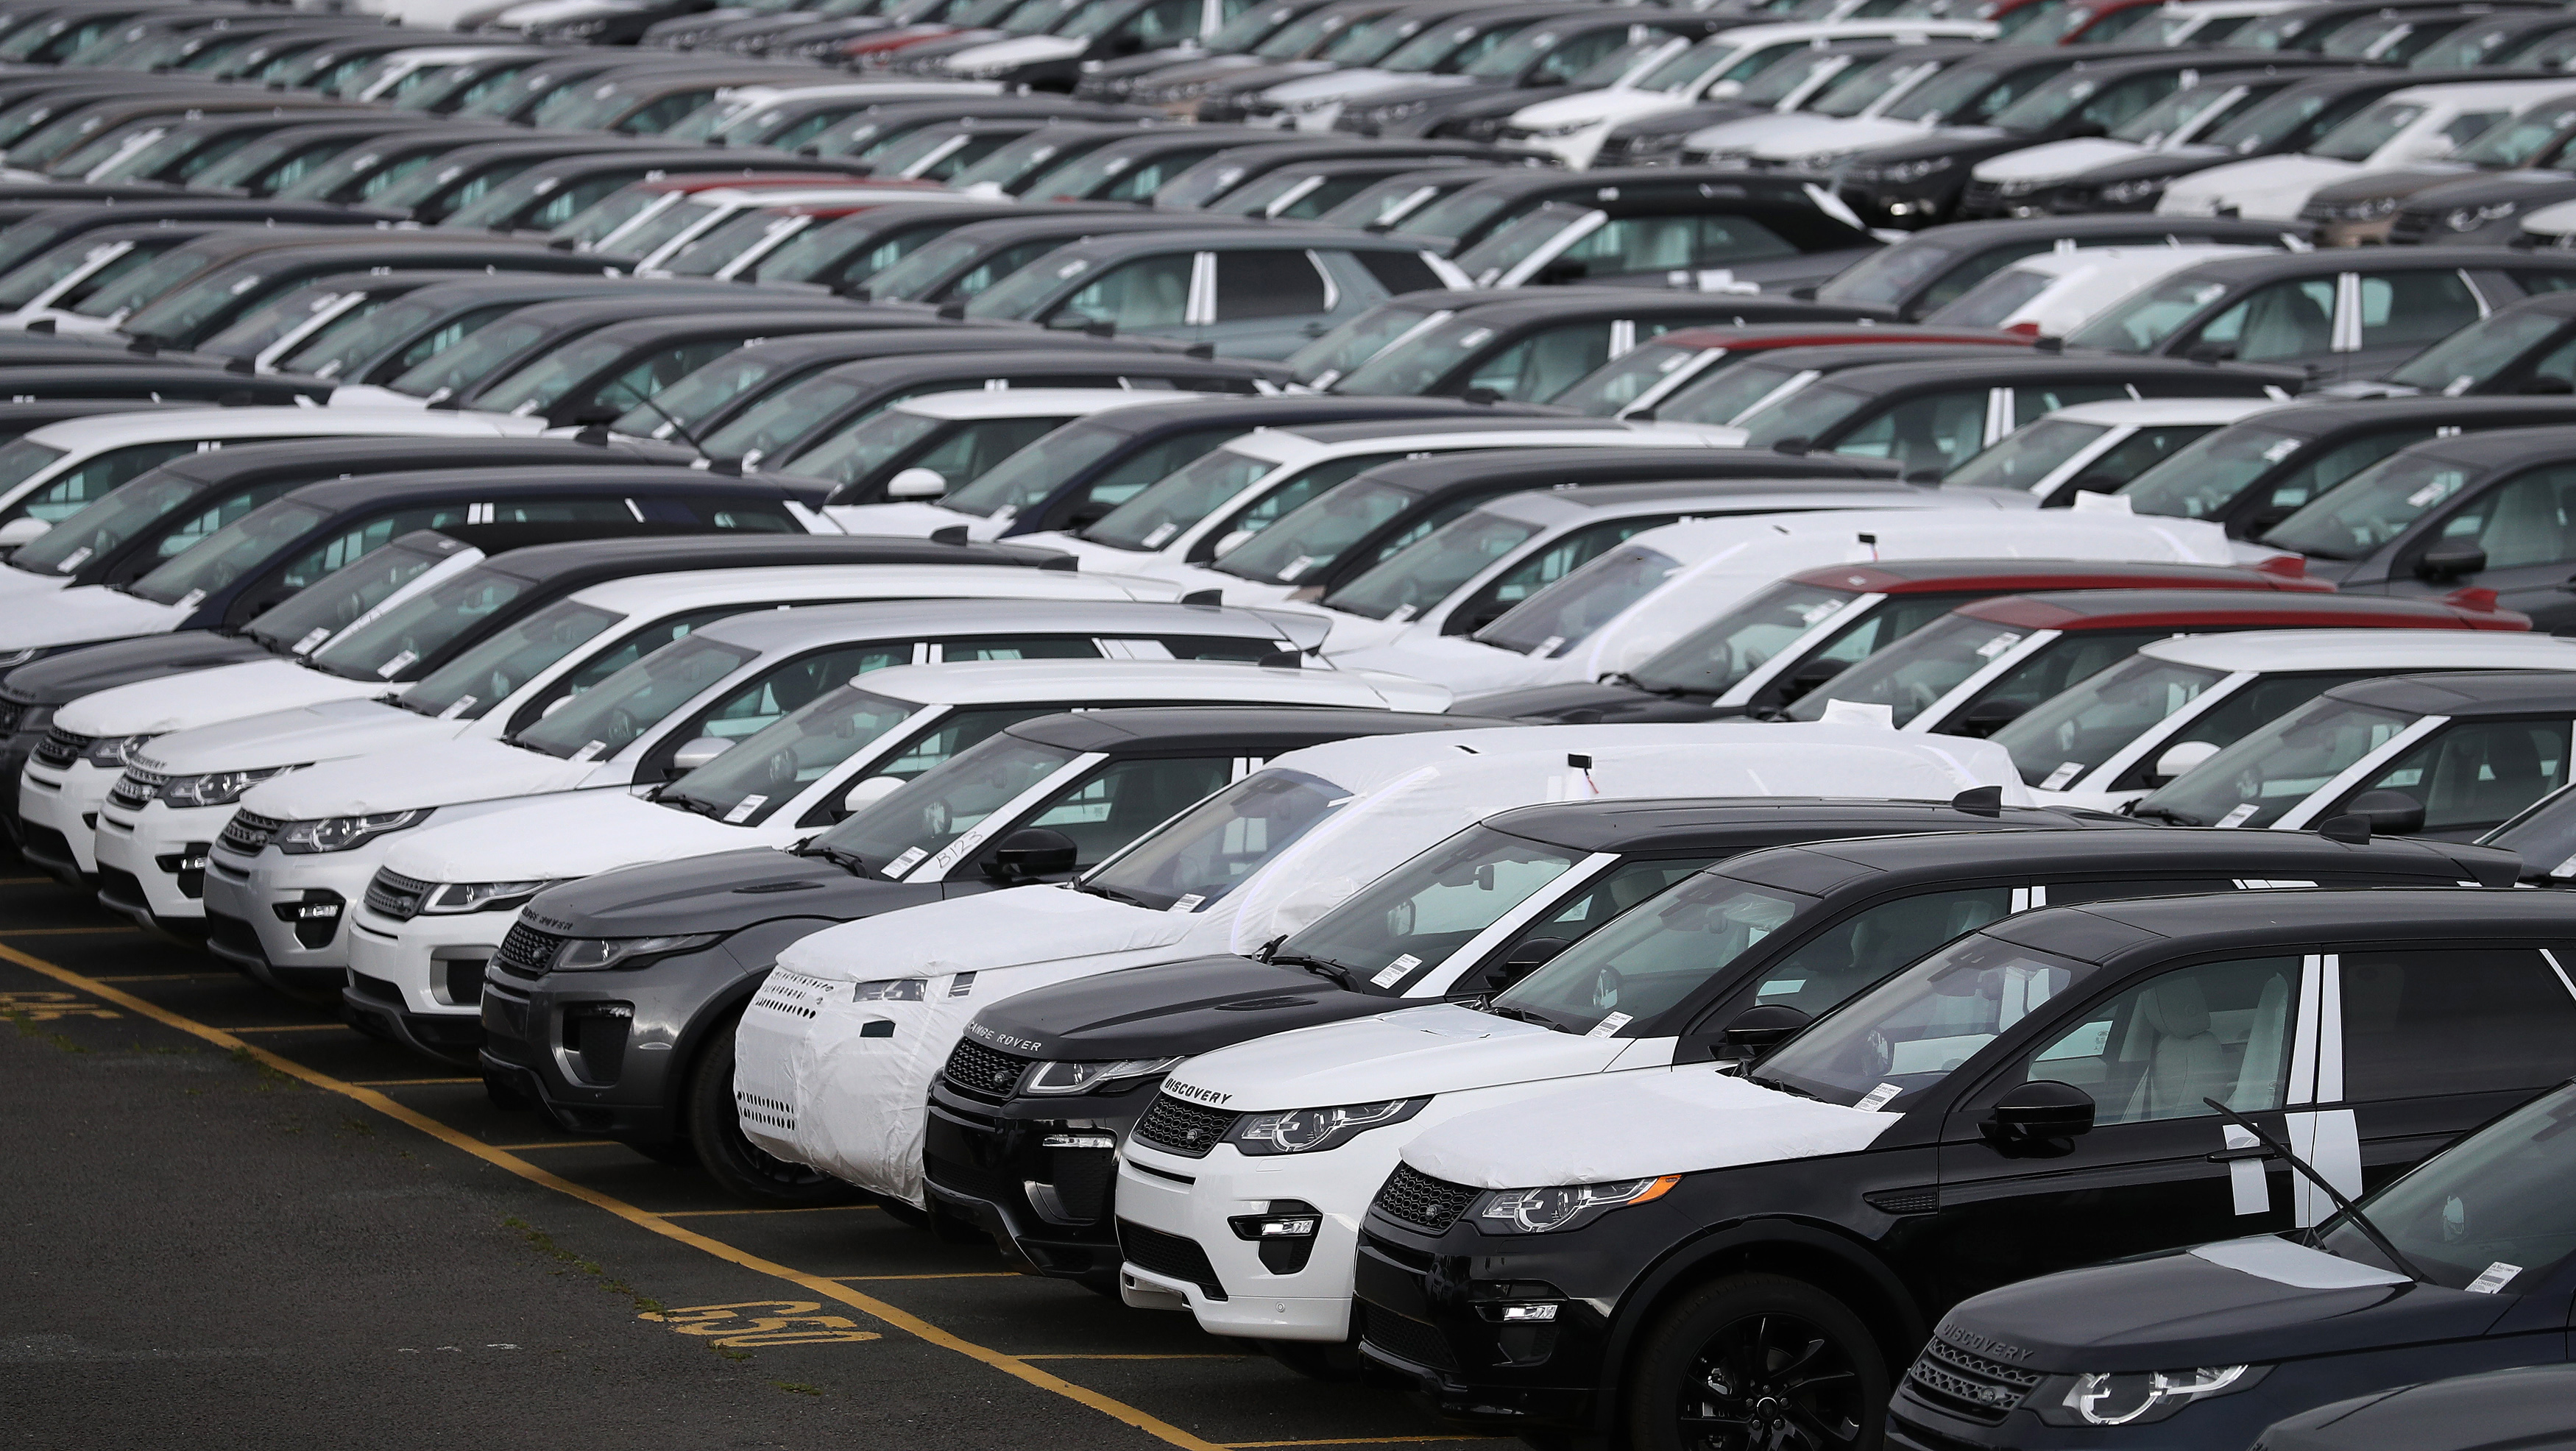 New Land Rover cars are seen in a parking lot at the Jaguar Land Rover plant at Halewood in Liverpool, northern England, September 12 , 2016. REUTERS/Phil Noble/File Photo - LR1ECA50NQBZZ